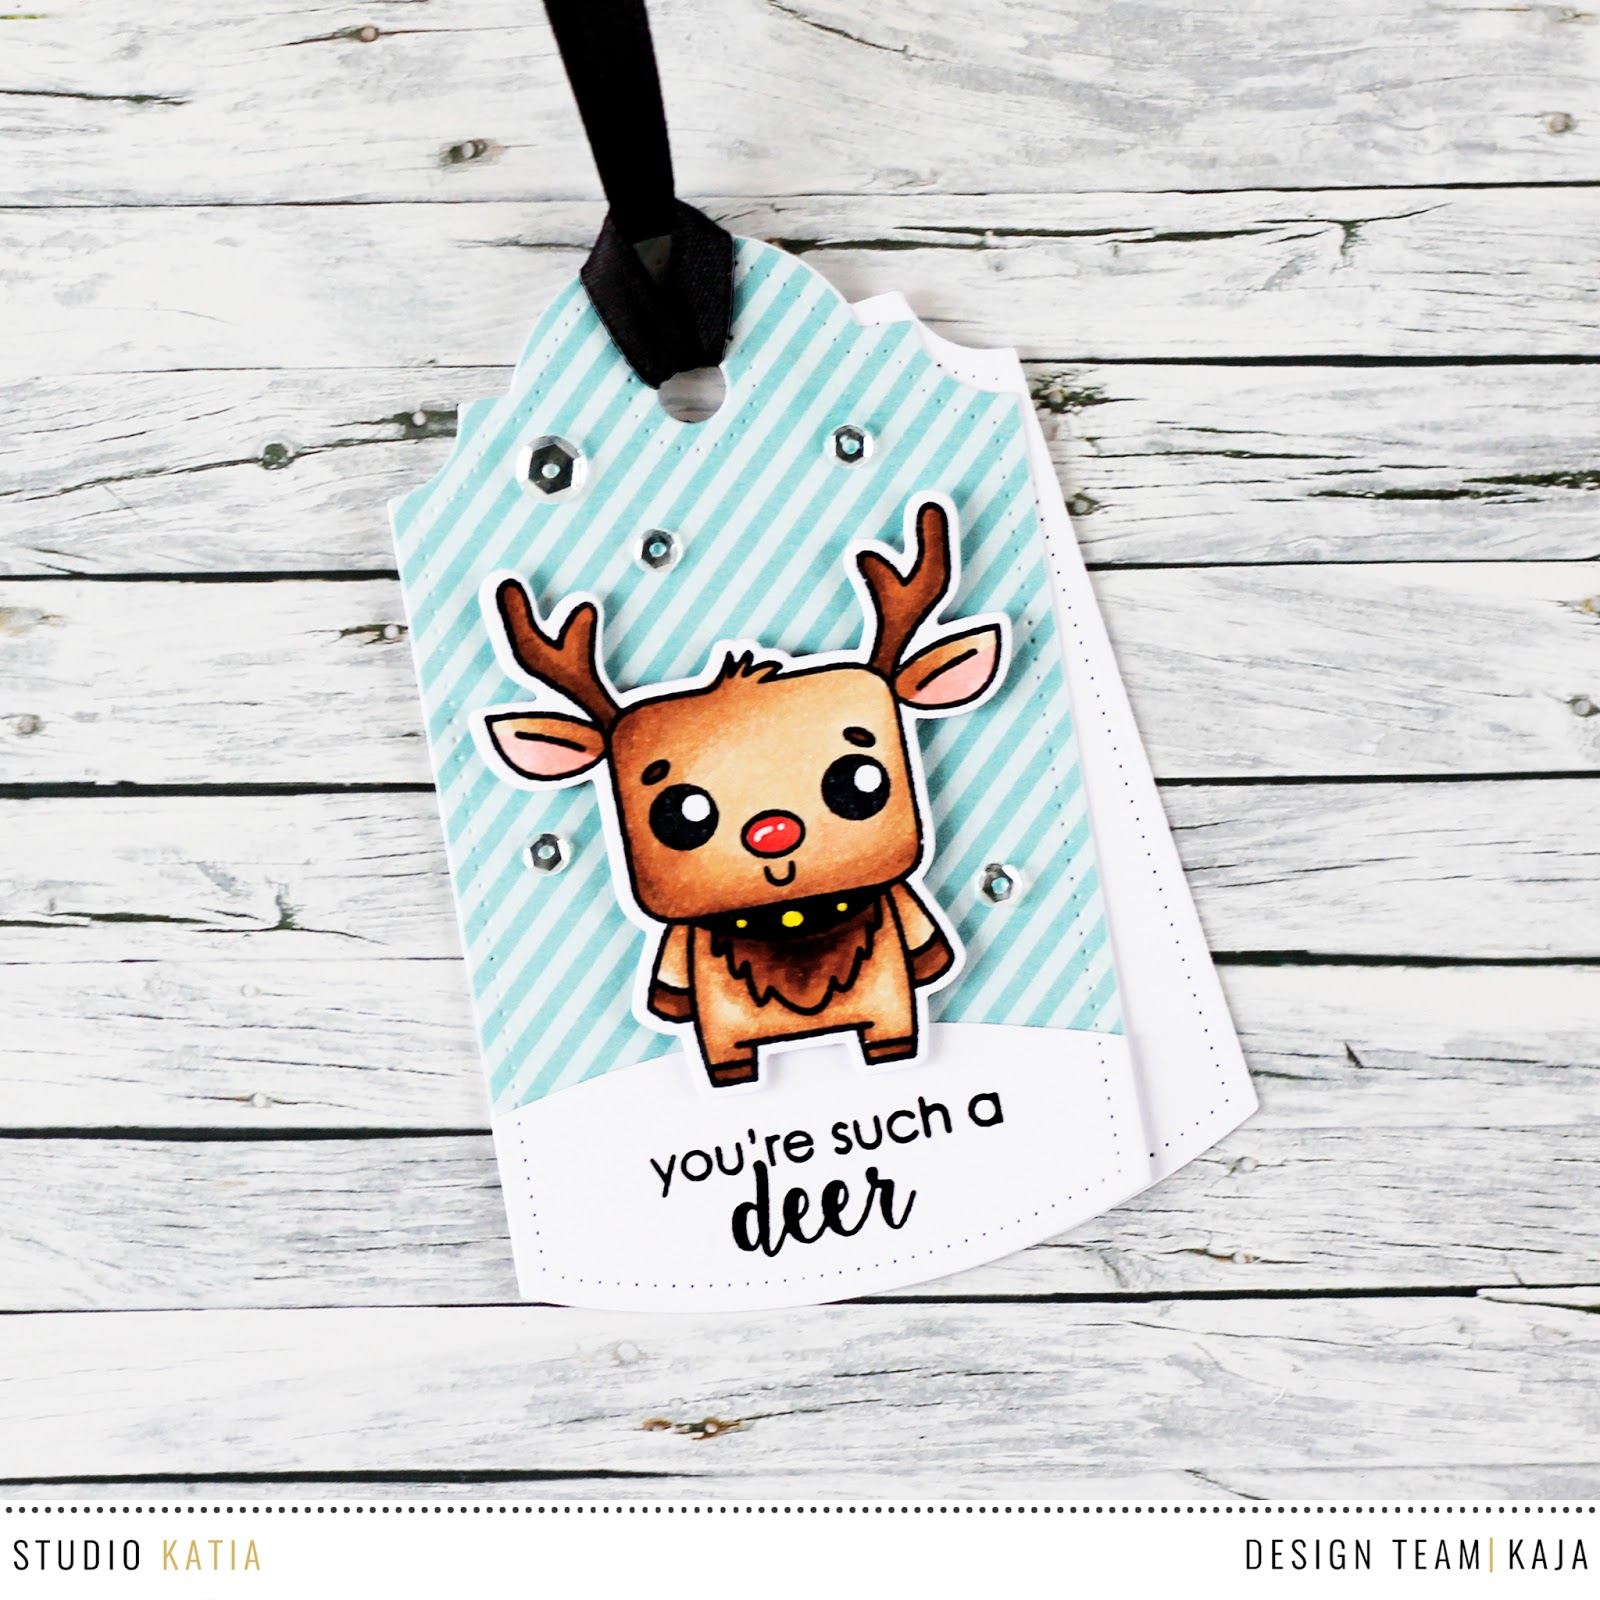 25 days of Christmas tags | STUDIO KATIA